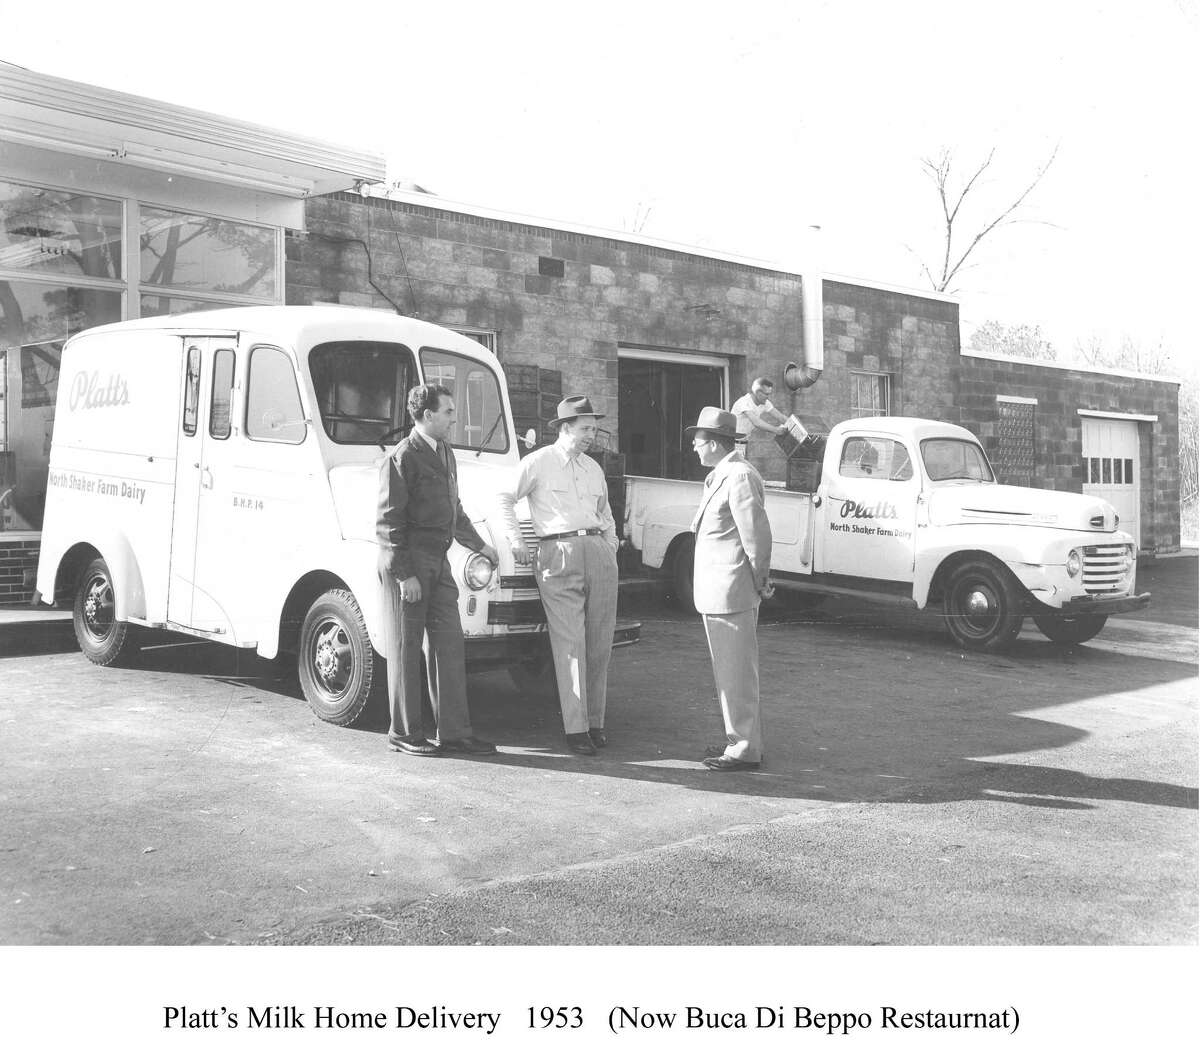 Platt's home milk delivery in 1953. From left, Joseph Pettograsso, Ed Platt, and a Gulf Oil salesman. In the background is Johnny Wiesniewski, loading the truck. (HANDOUT FROM AUTHOR RICHARD J. NAYLOR OF